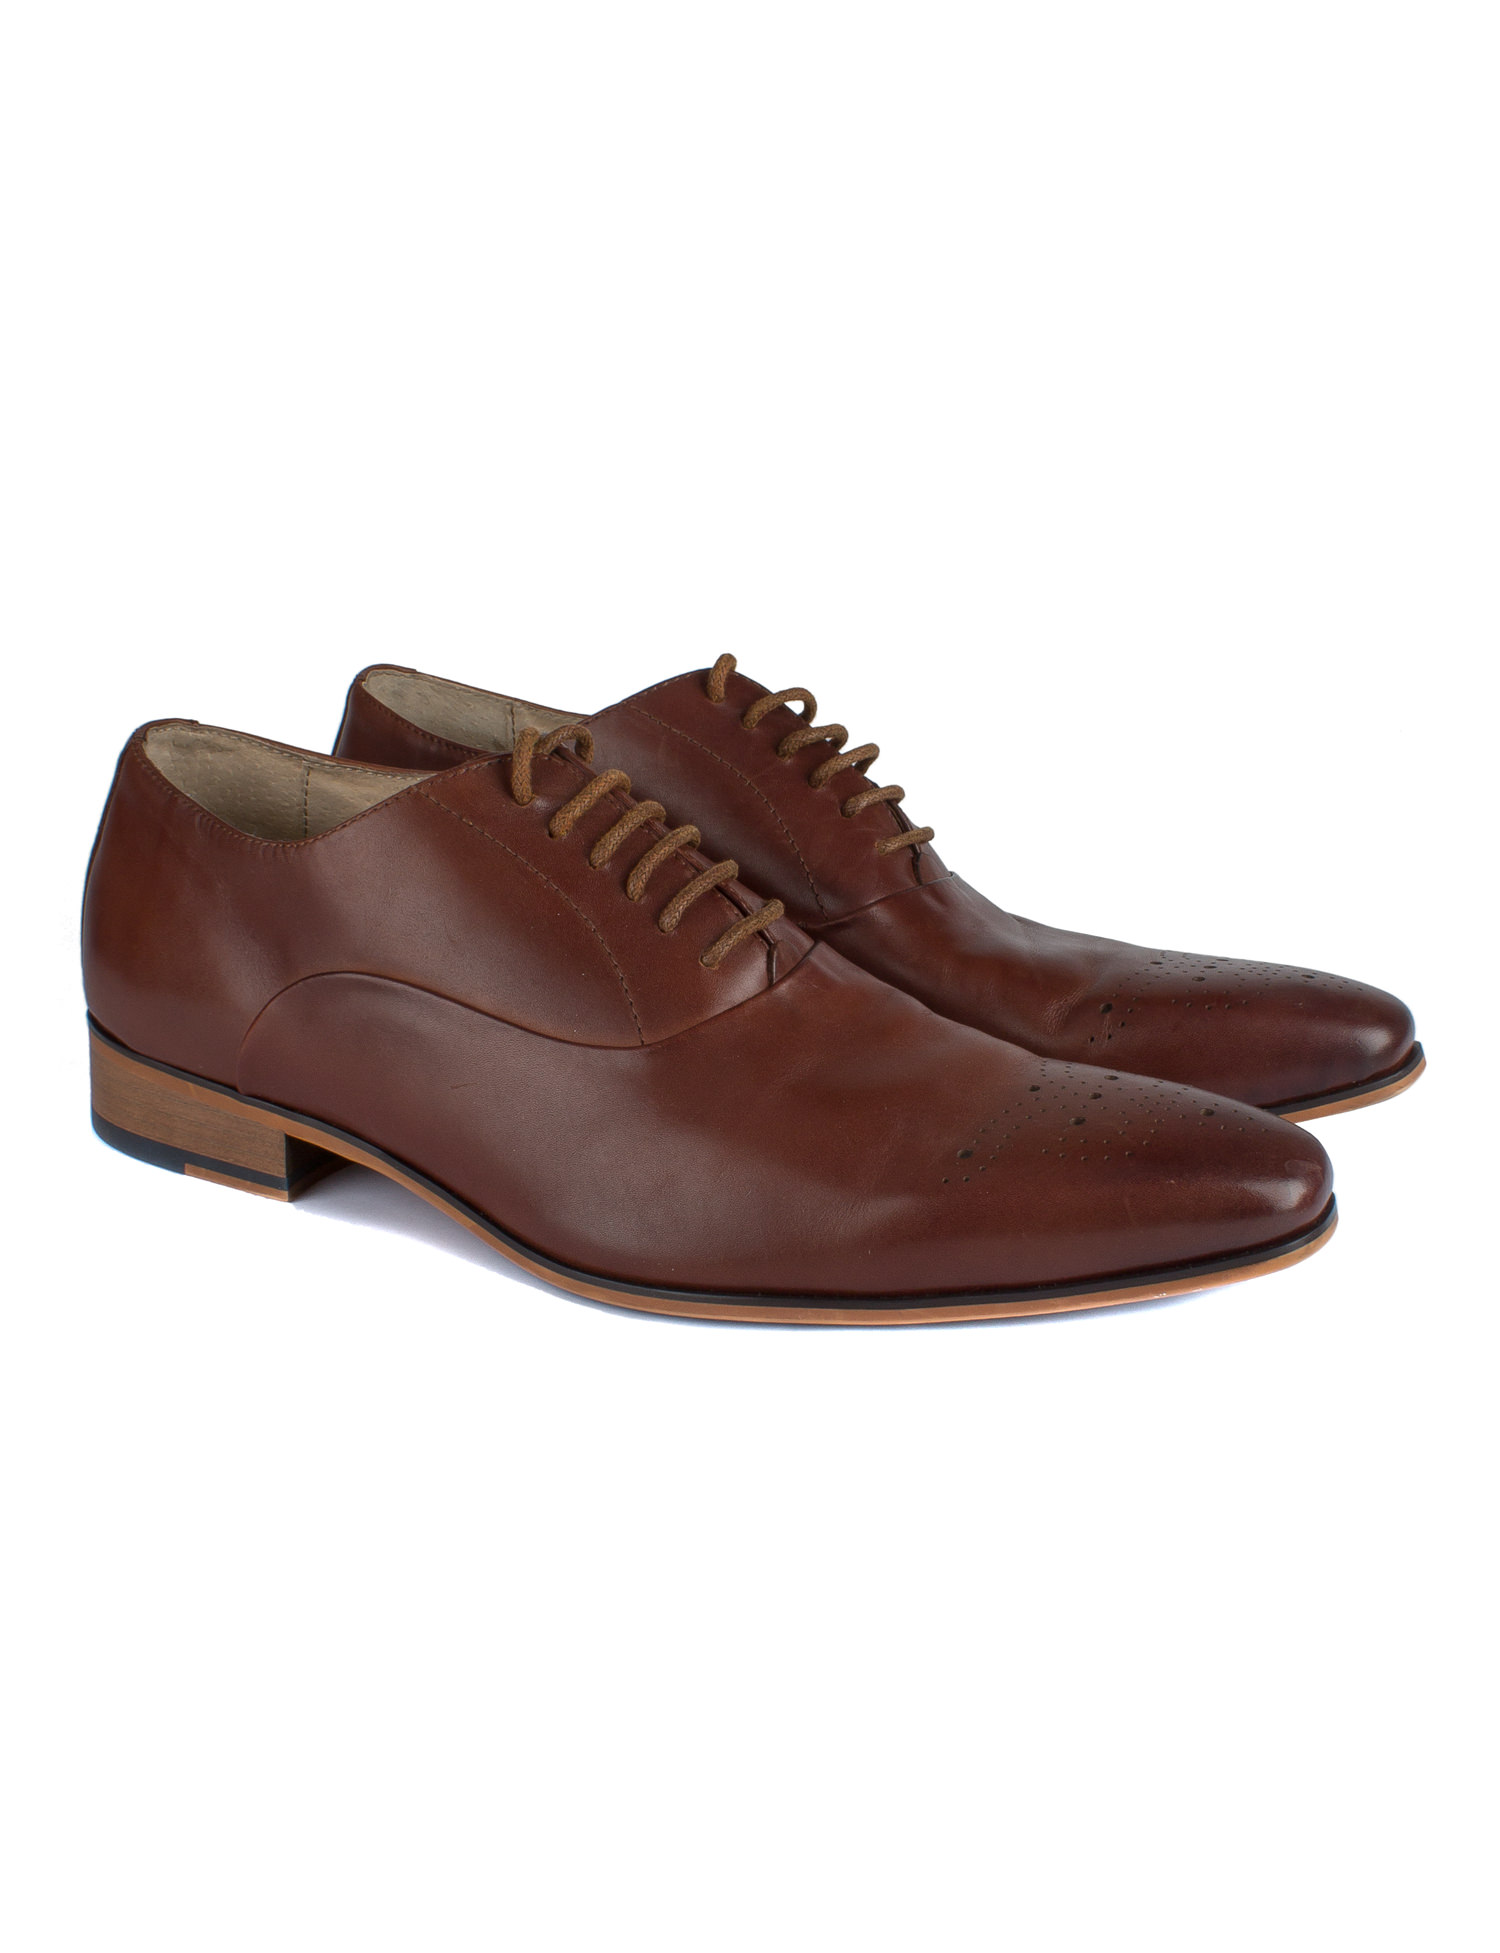 Men's Brown Punched 100% Leather Shoes